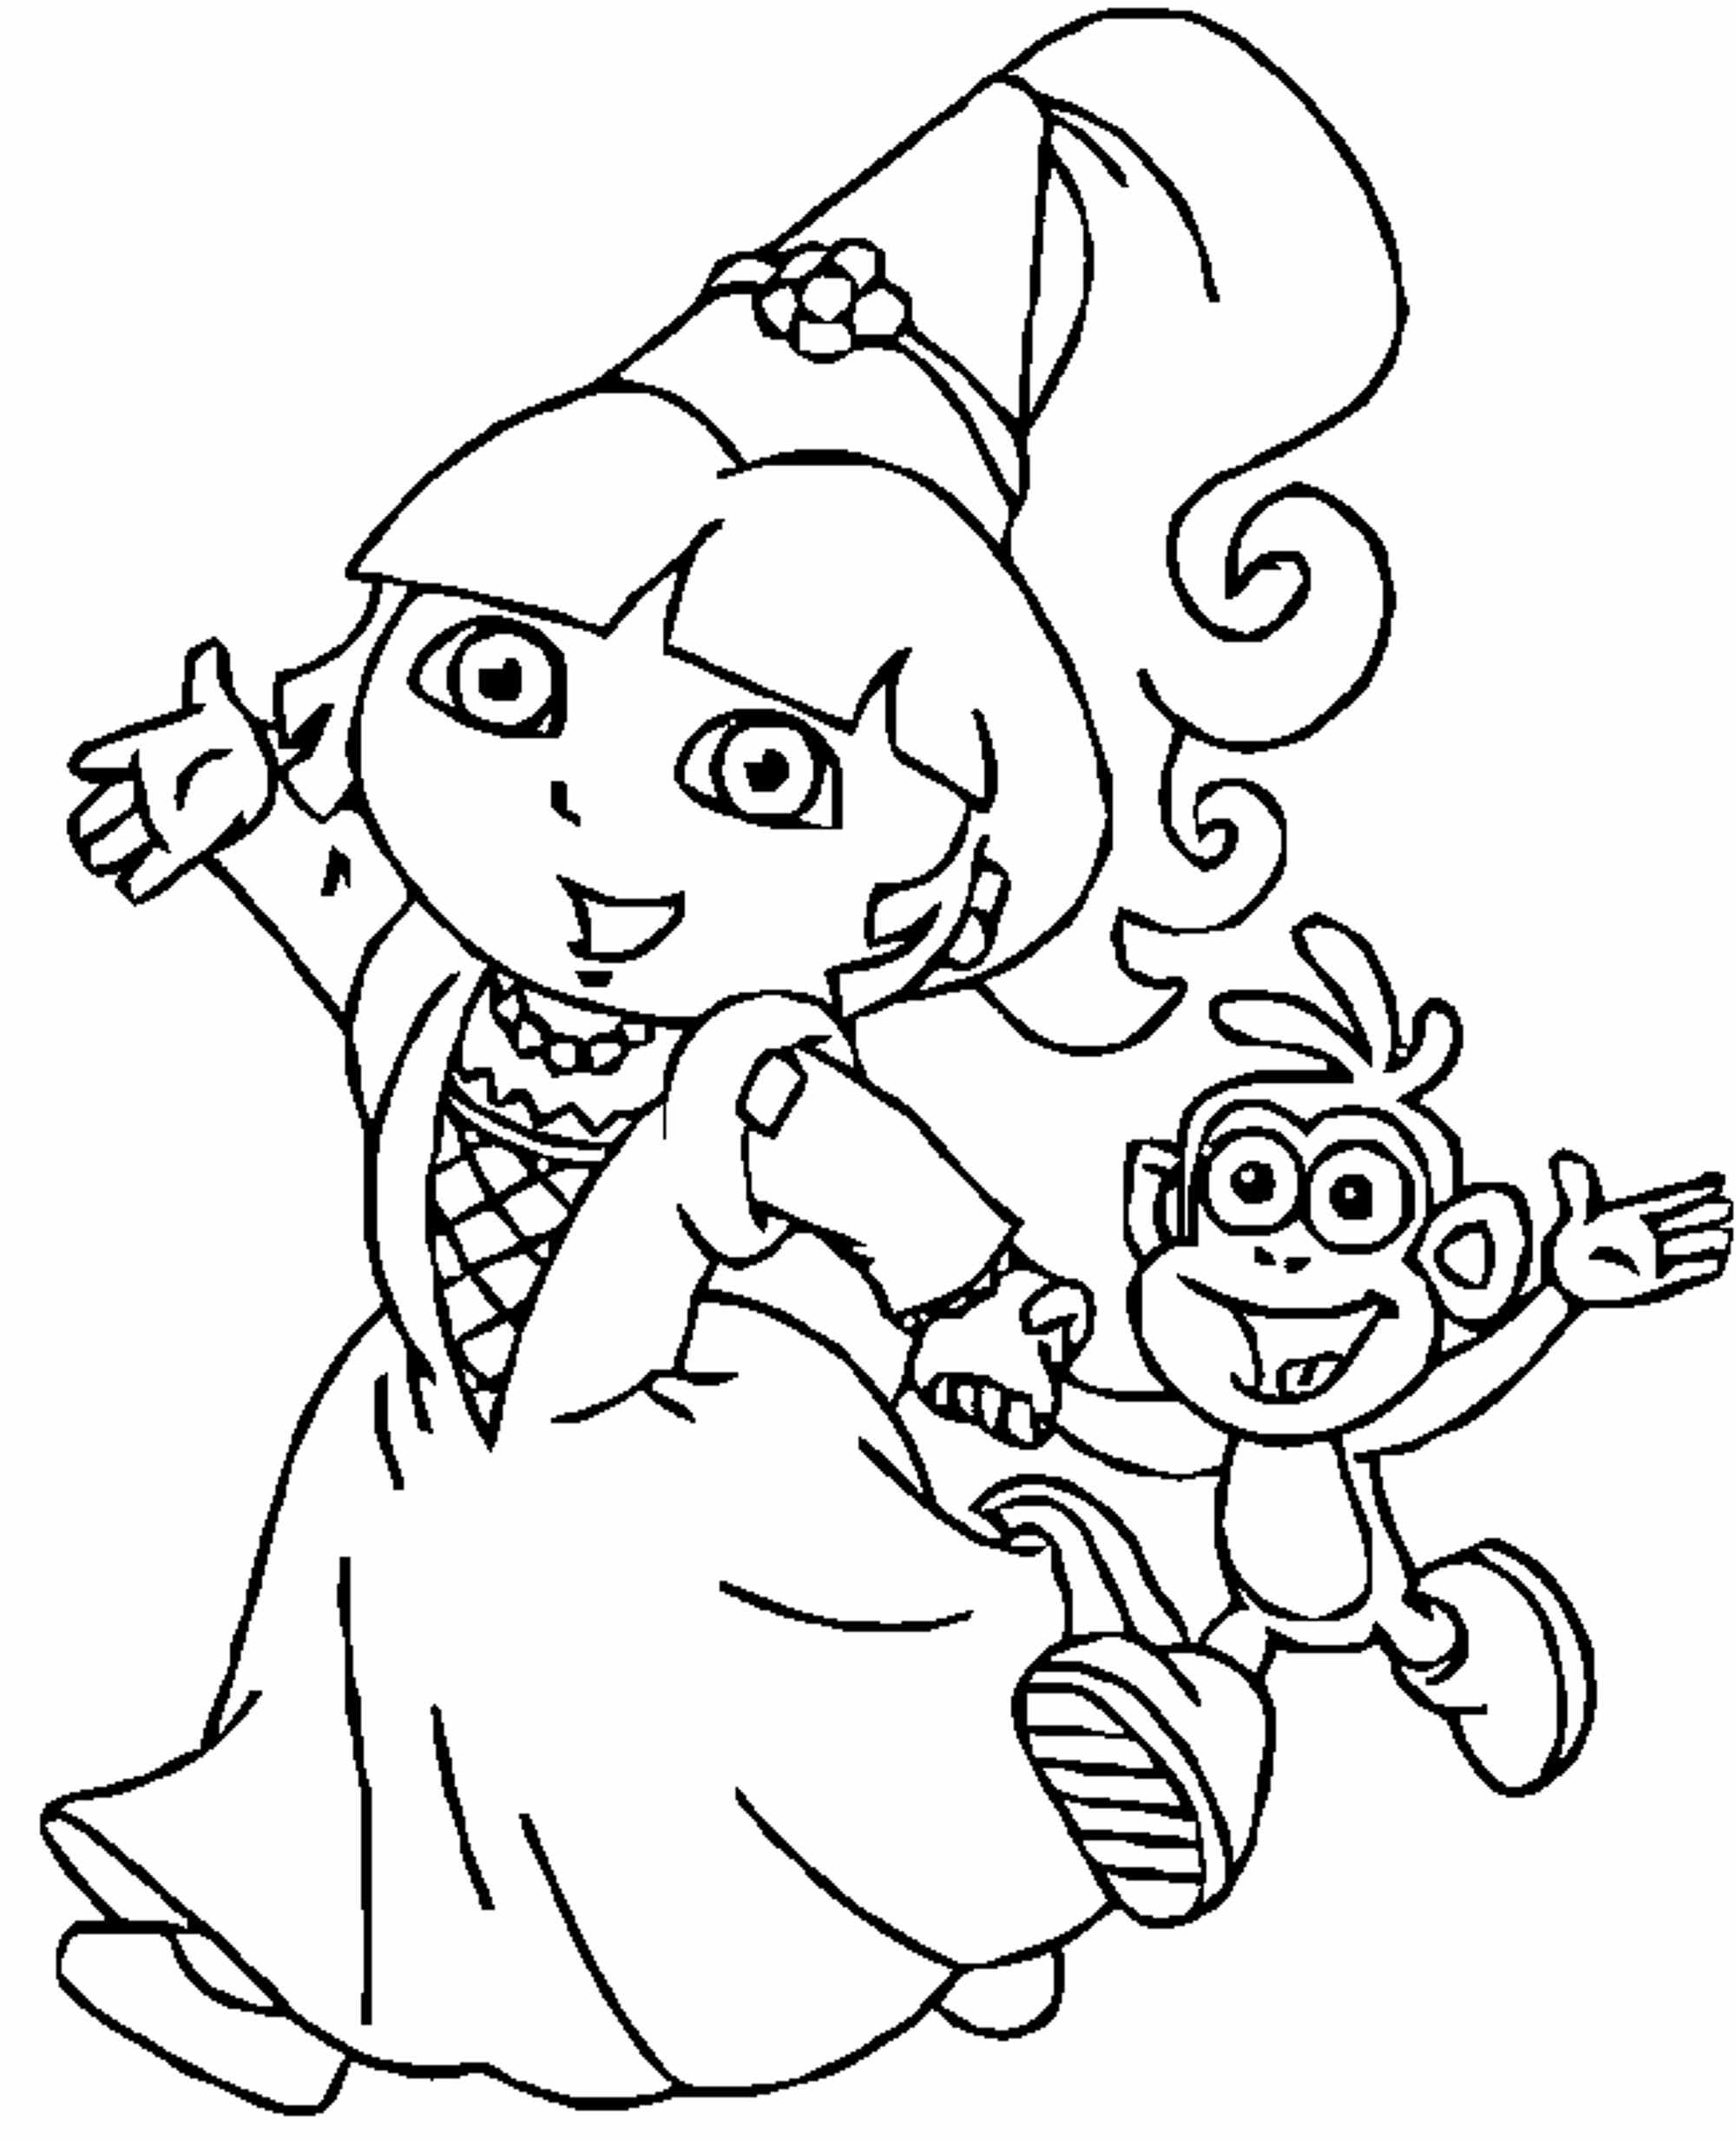 dora pictures to print and color dora coloring pages only coloring pages dora and pictures print color to